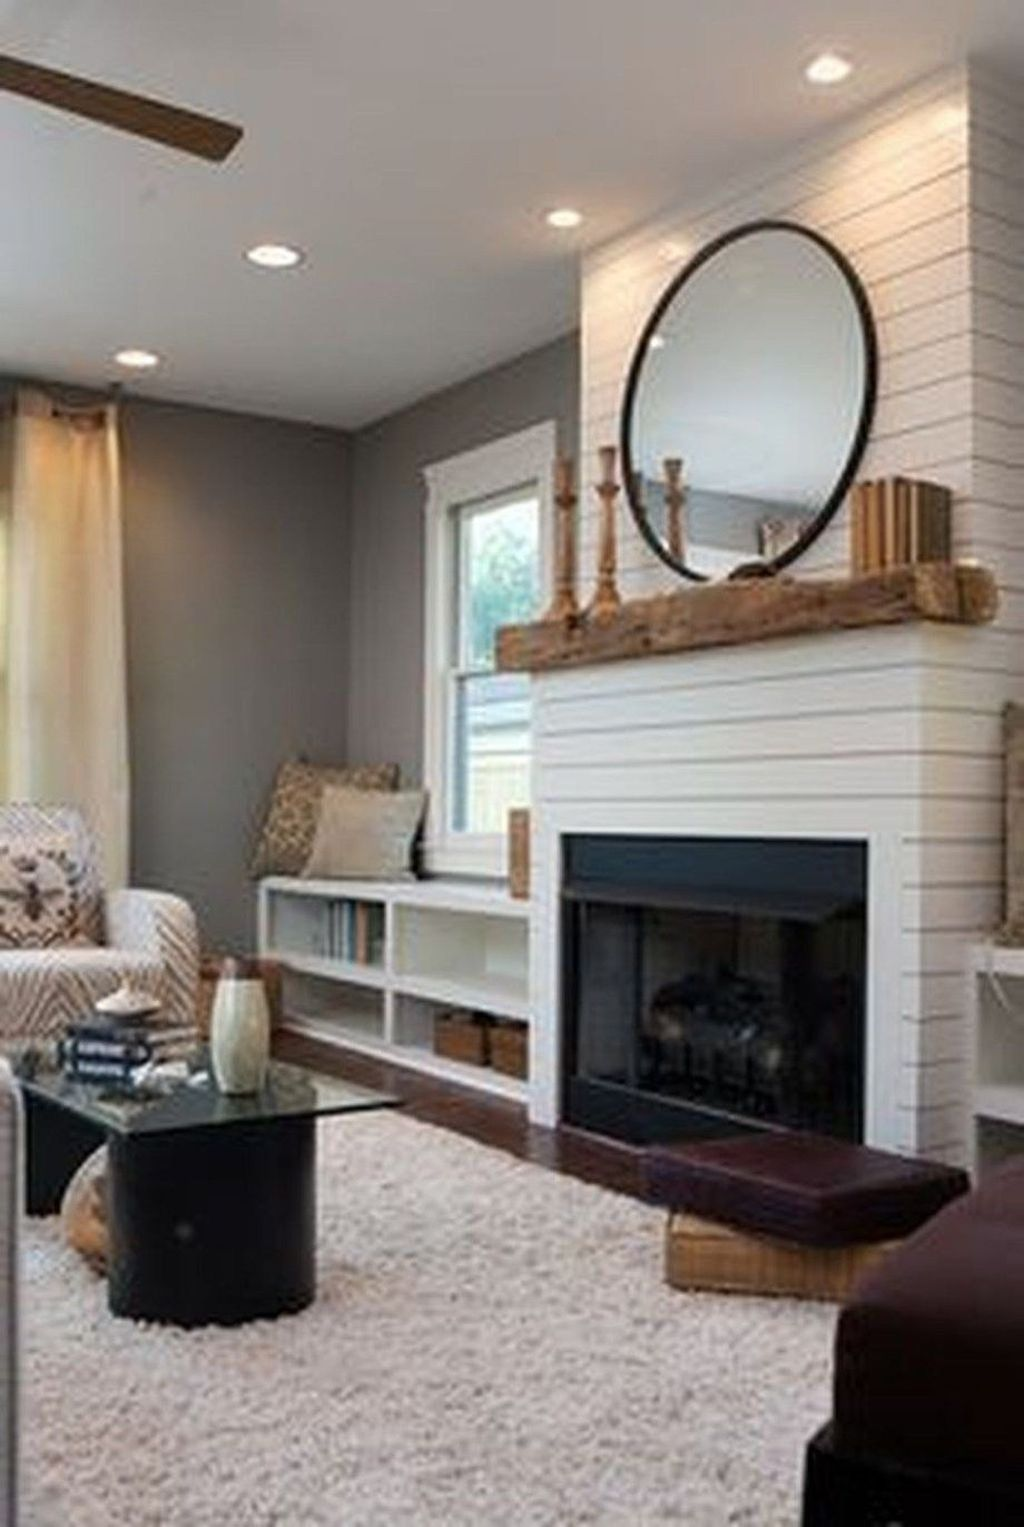 32 Popular Modern Farmhouse Fireplace Ideas Trend 2020 In 2020